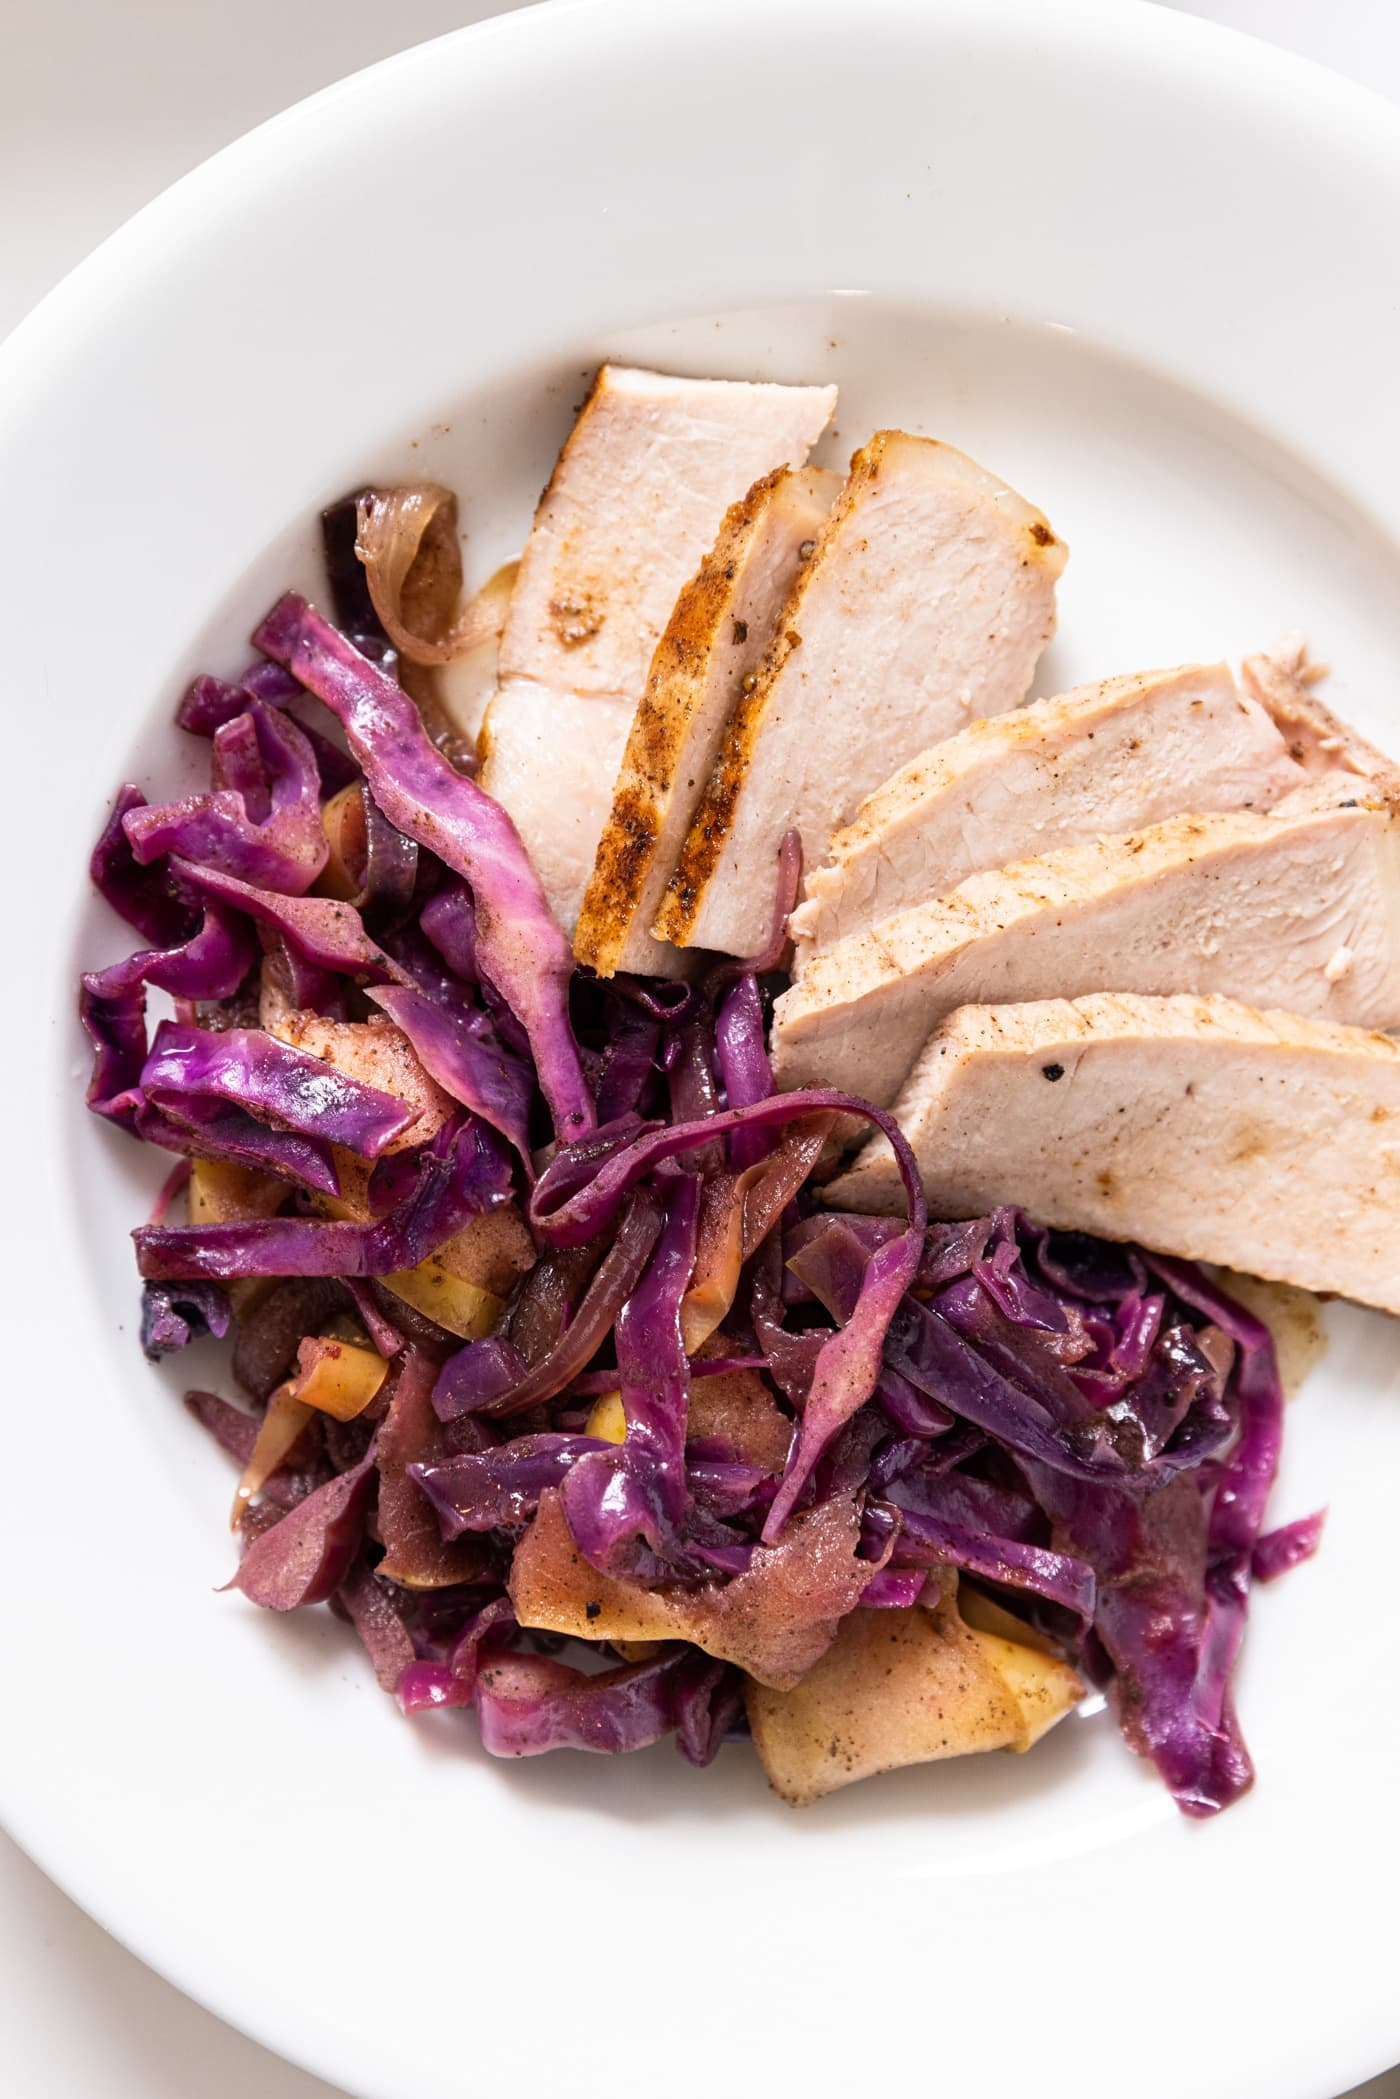 Top down view of white plate filled with slices of pork with red cabbage and apples on the side